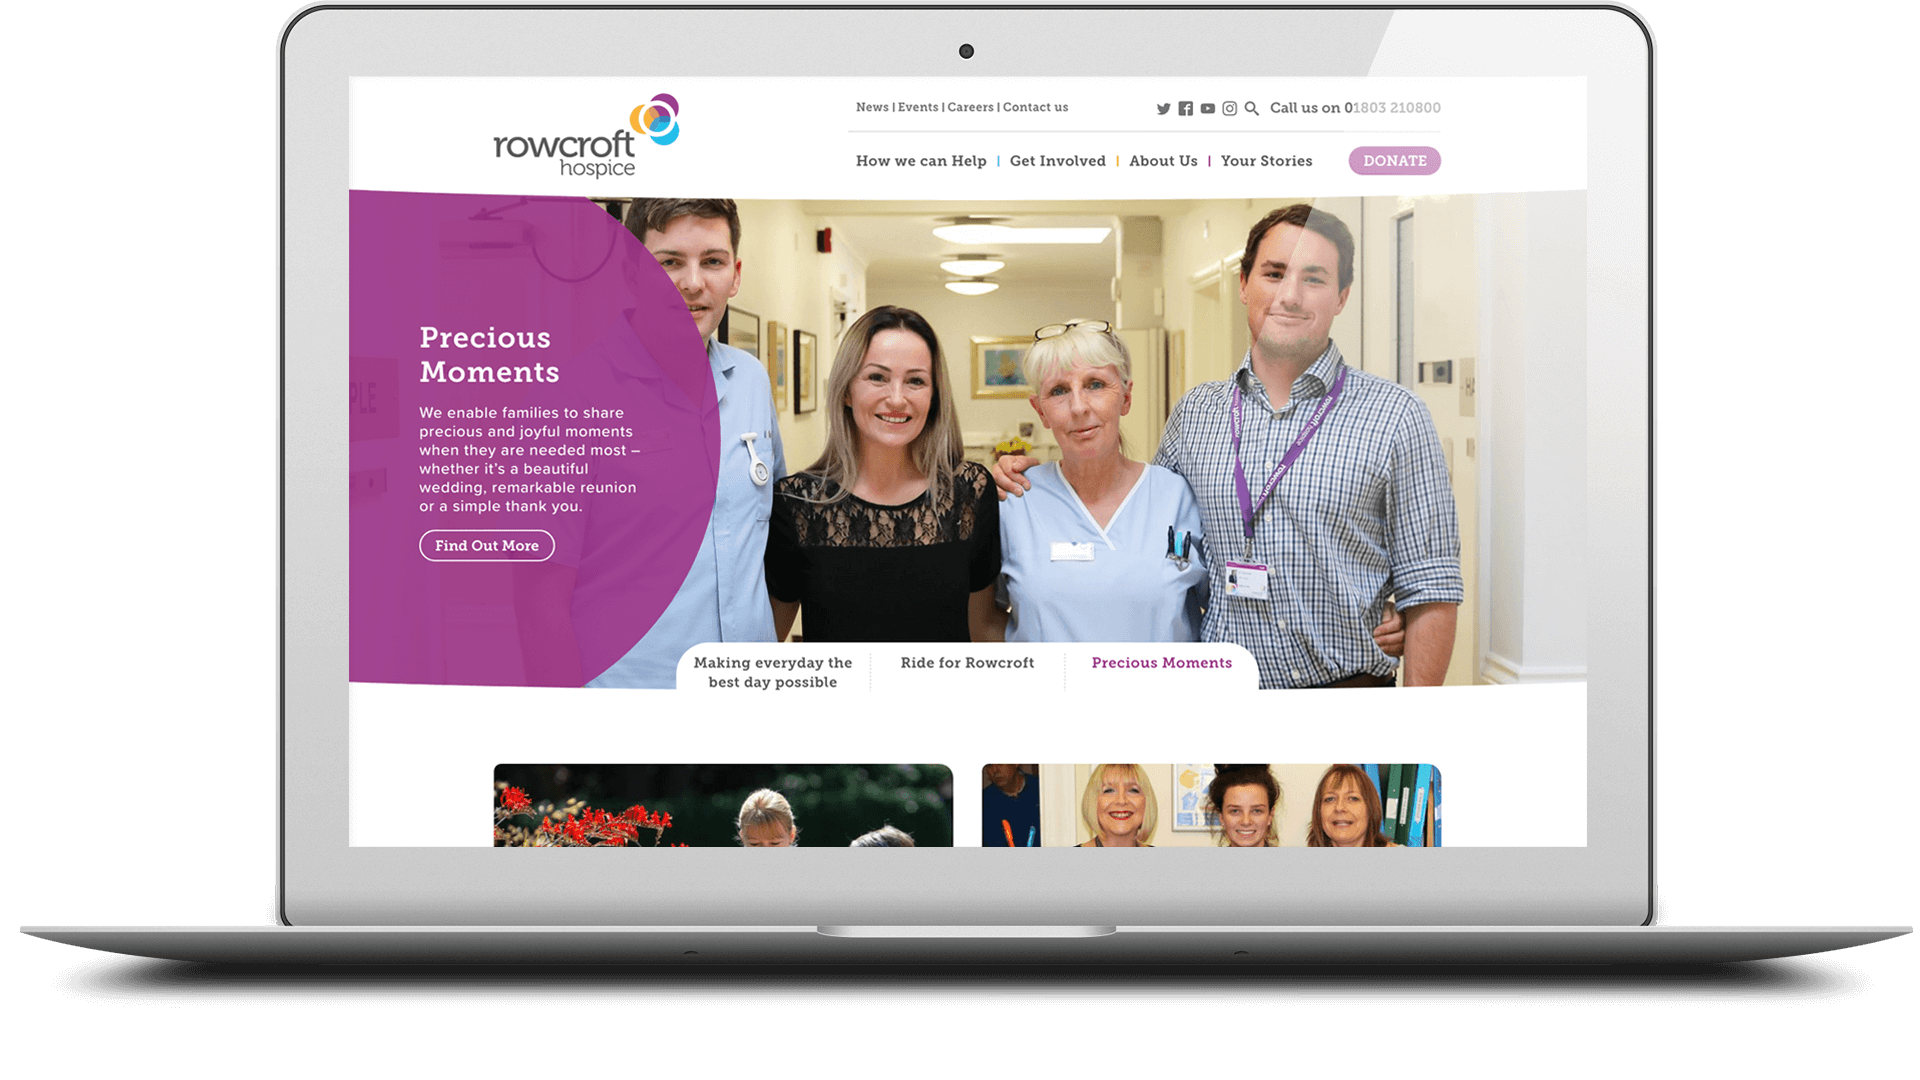 rowcroft hospice website